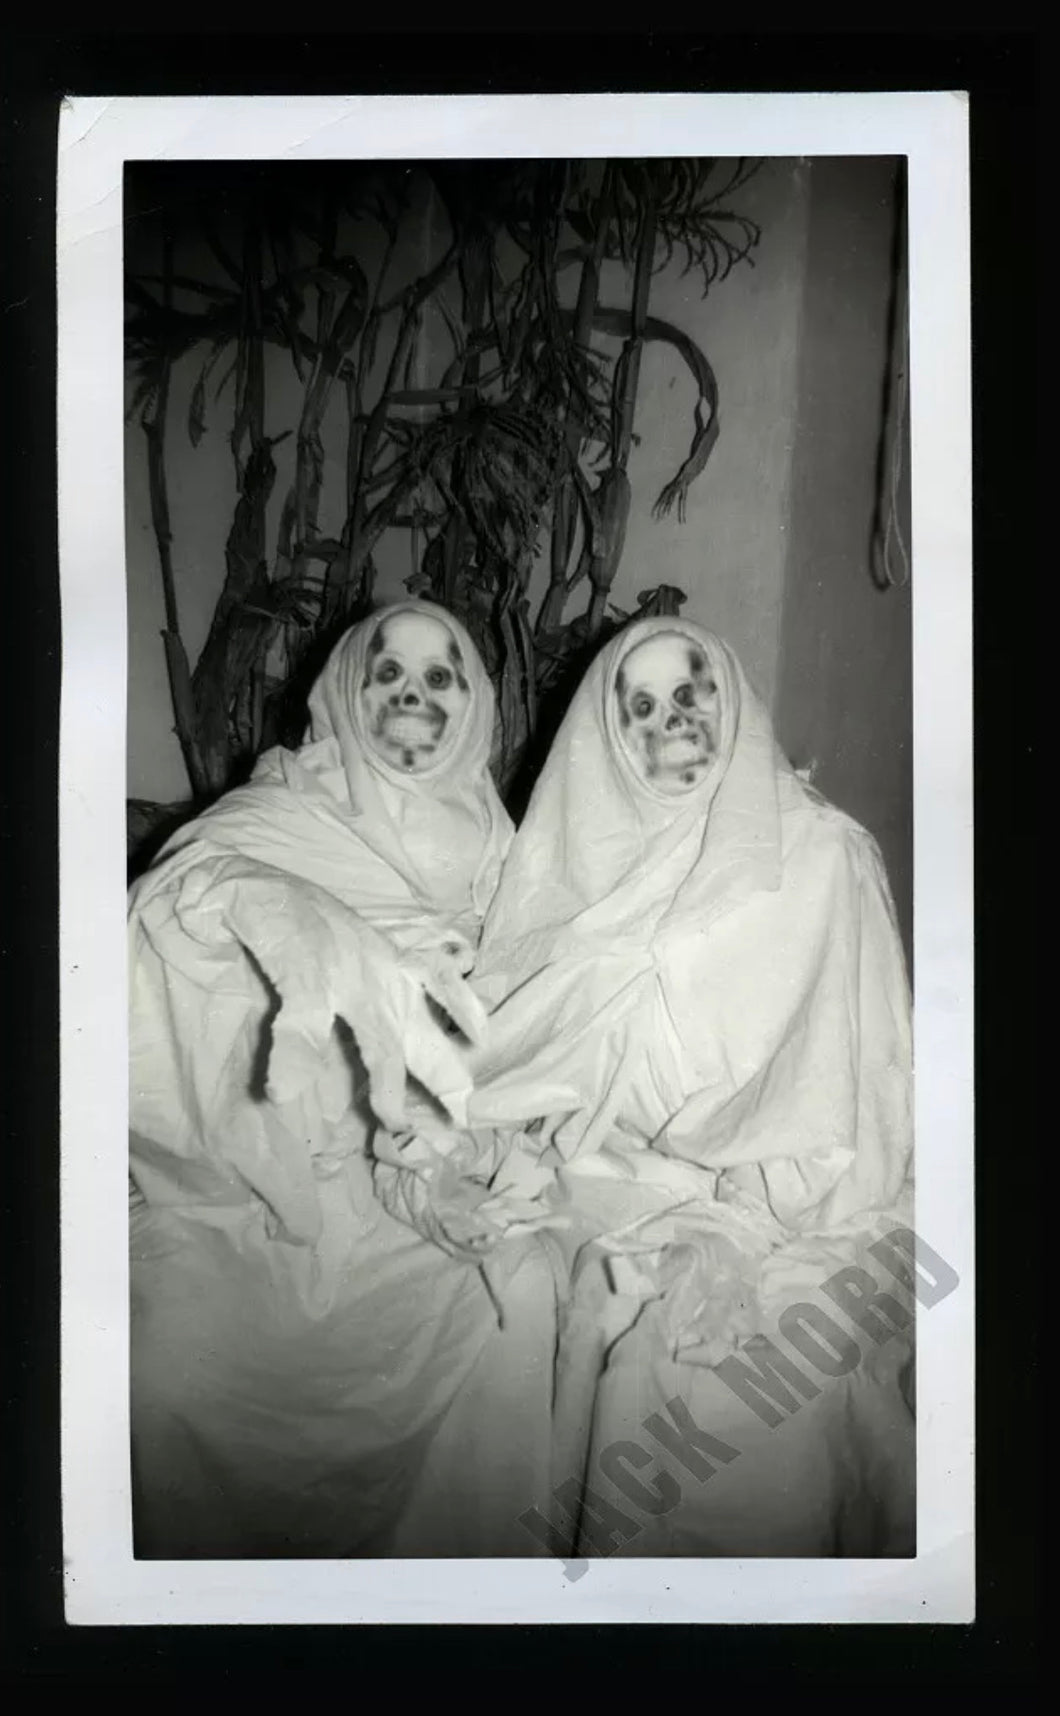 creepy halloween costume skull ghouls or ghosts vintage snapshot photo